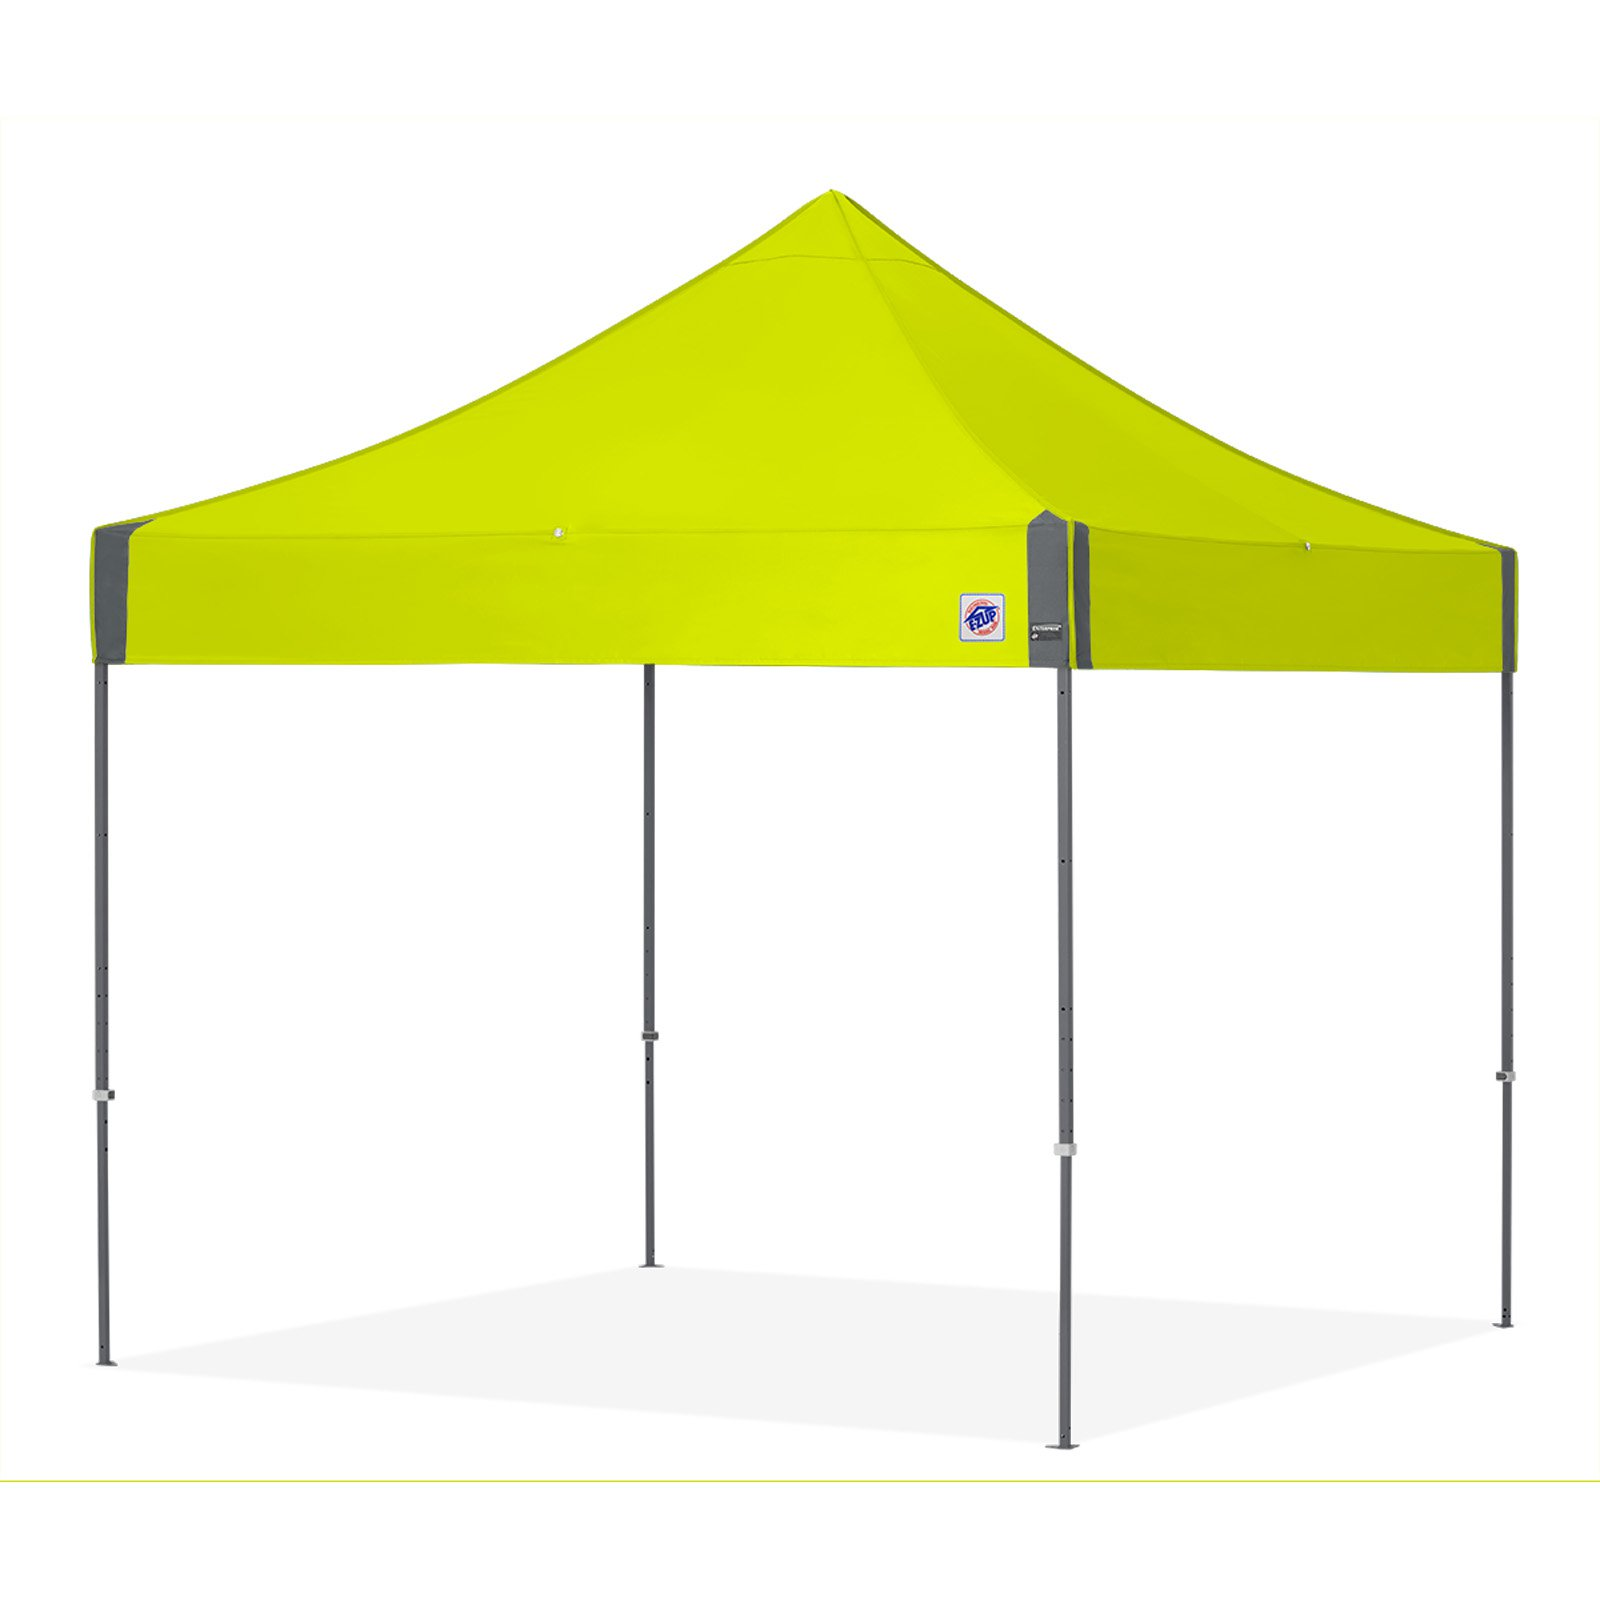 E-Z UP Enterprise 10 x 10 ft. Canopy with Carbon Steel Frame